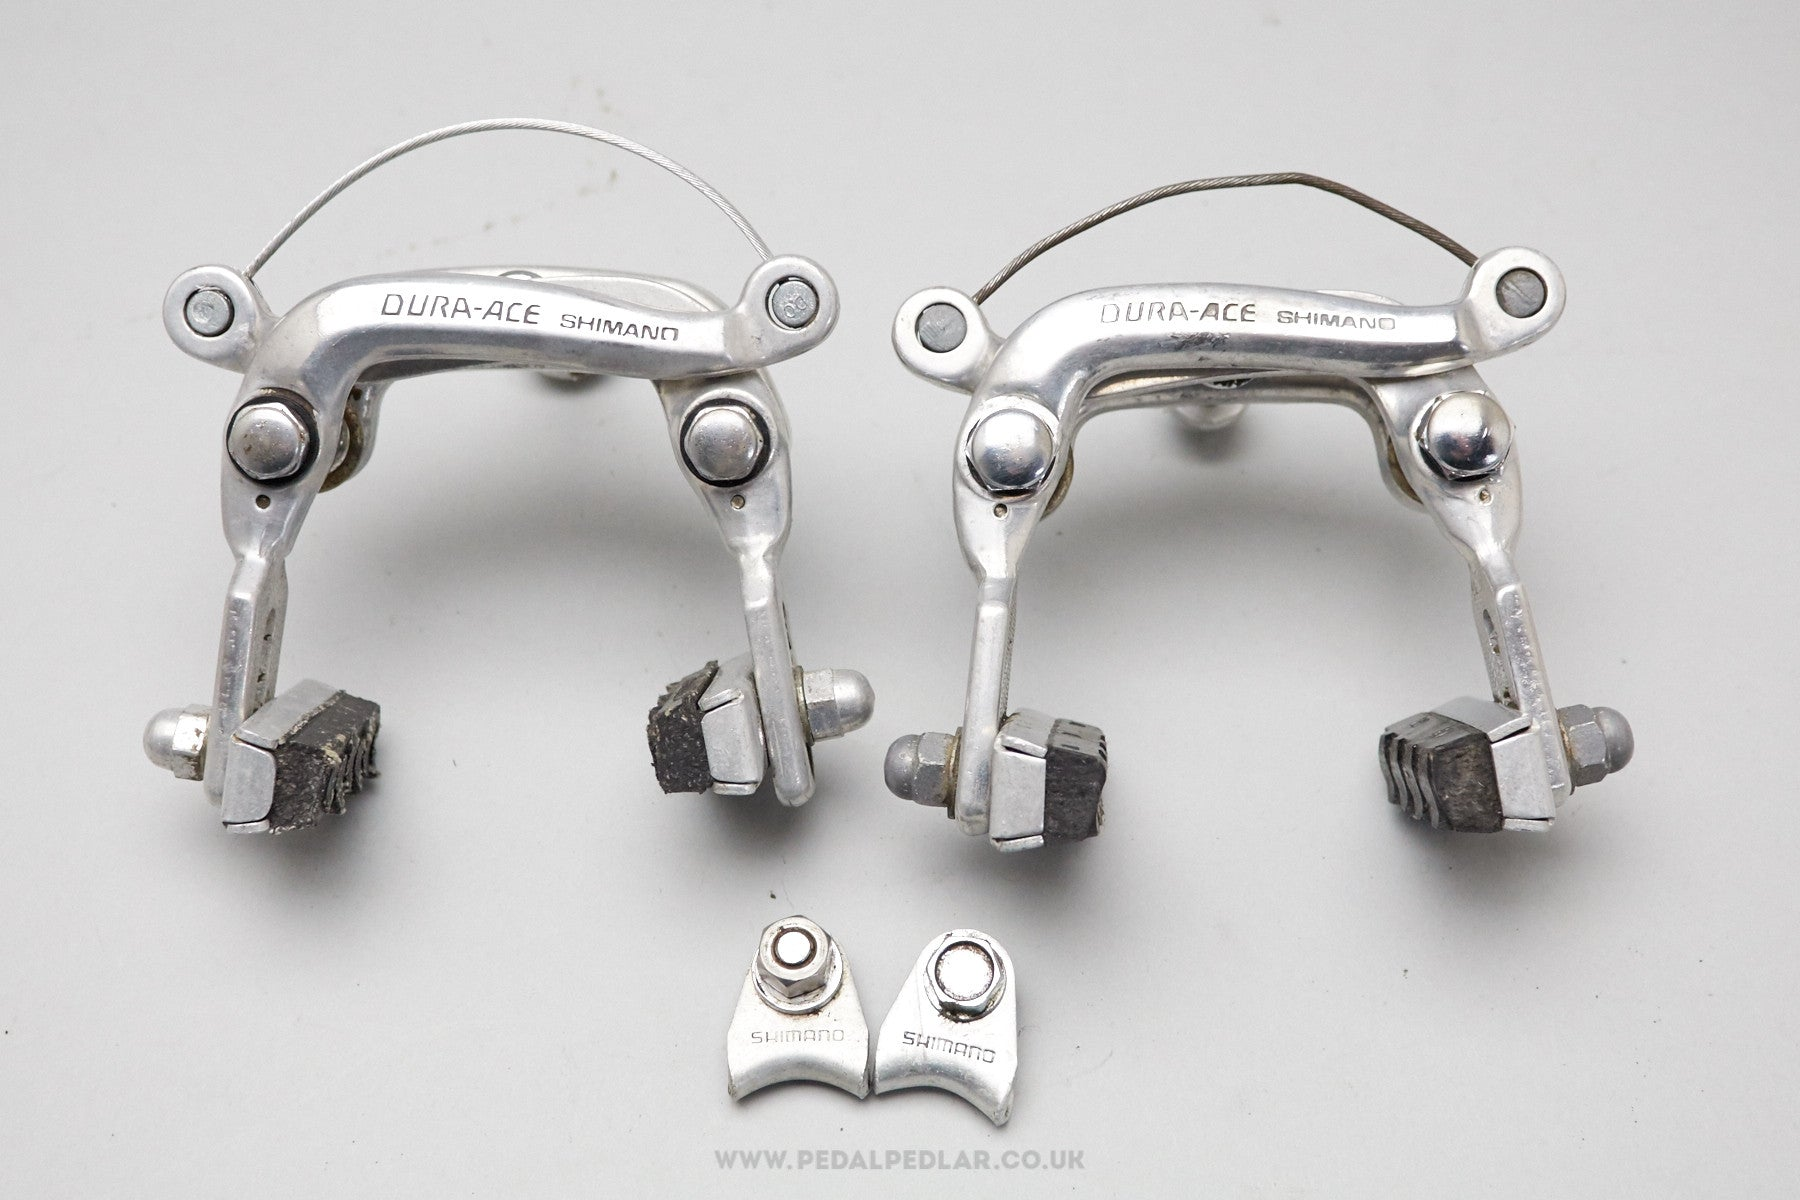 Shimano Dura-Ace Center Pull Vintage Brake Calipers